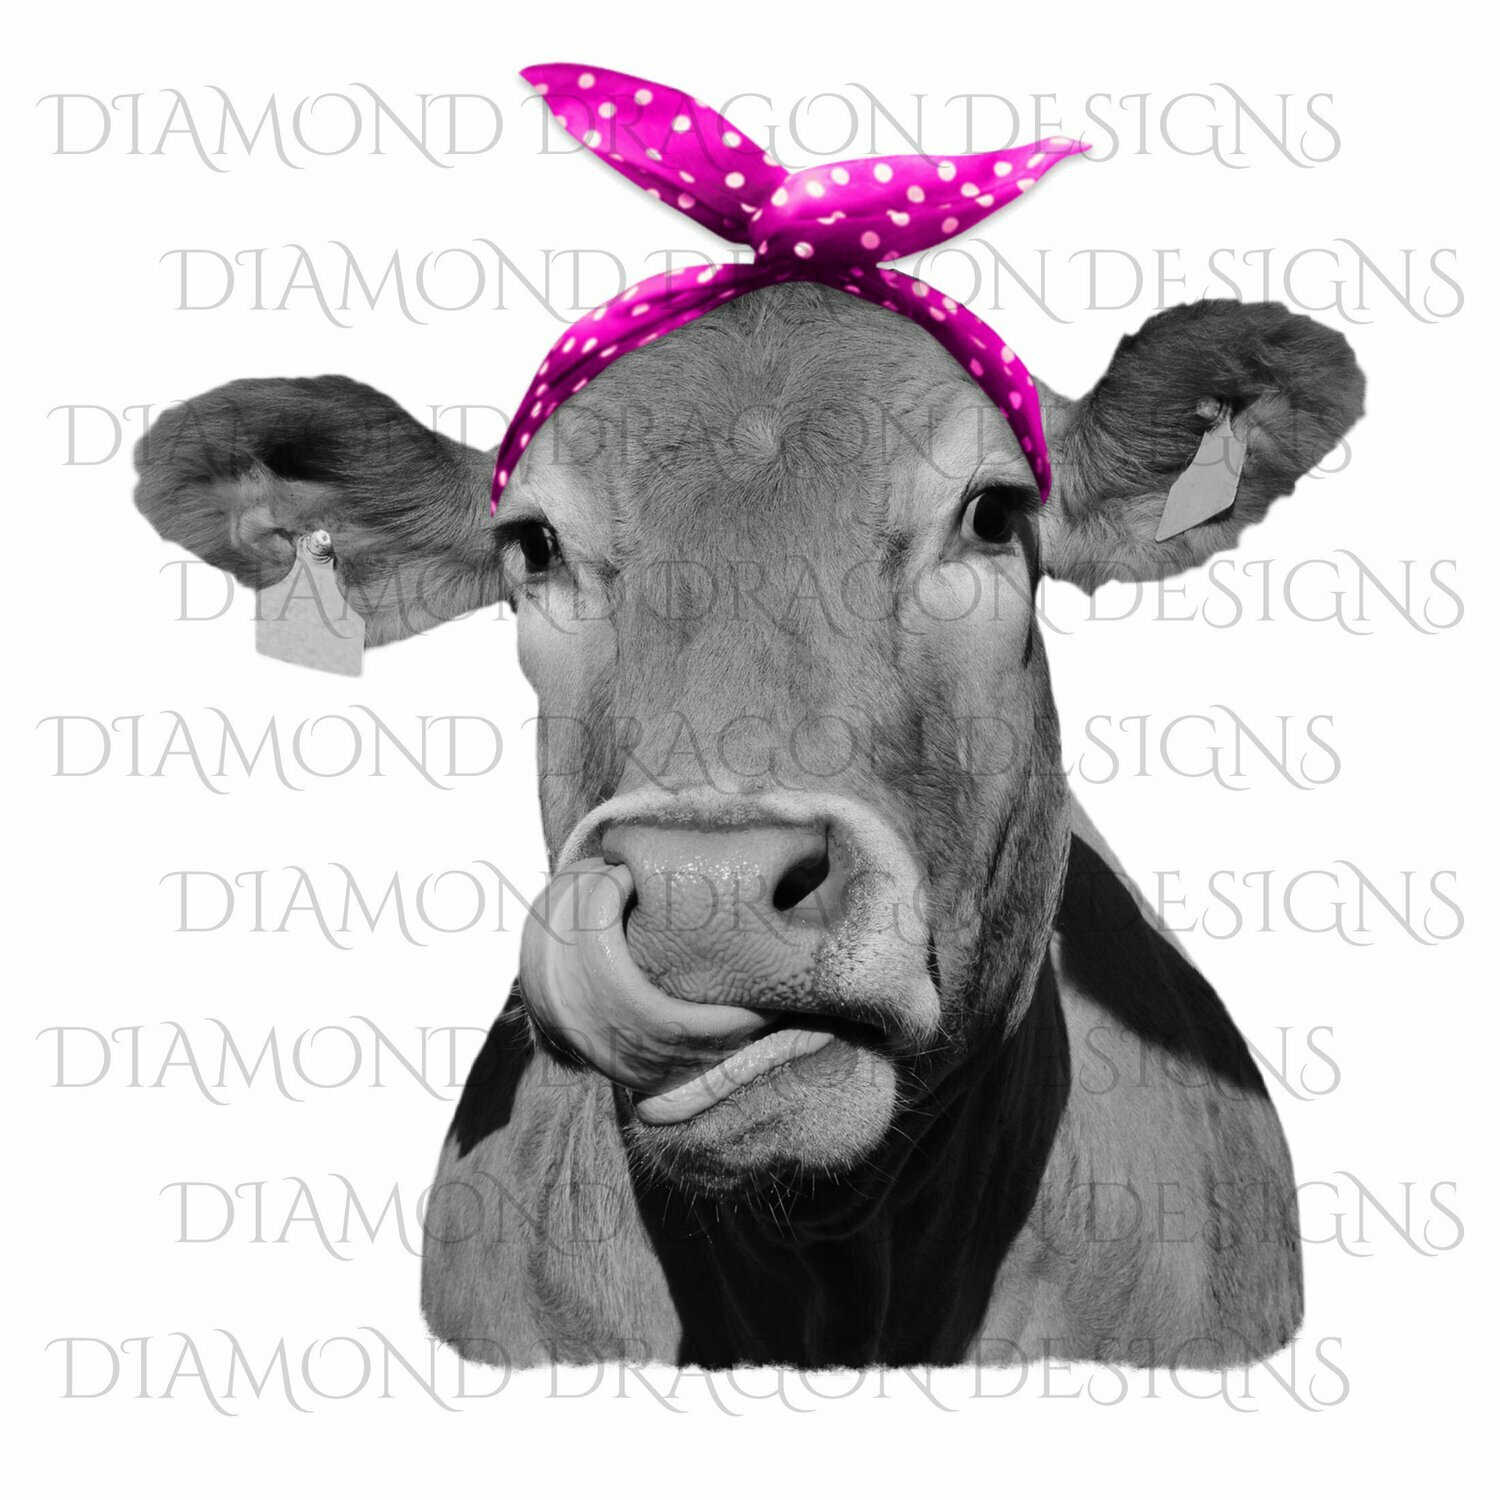 Cows - Heifer, Image, Cute Cow with Pink Polkadot Bandana, Cowlick, Waterslide